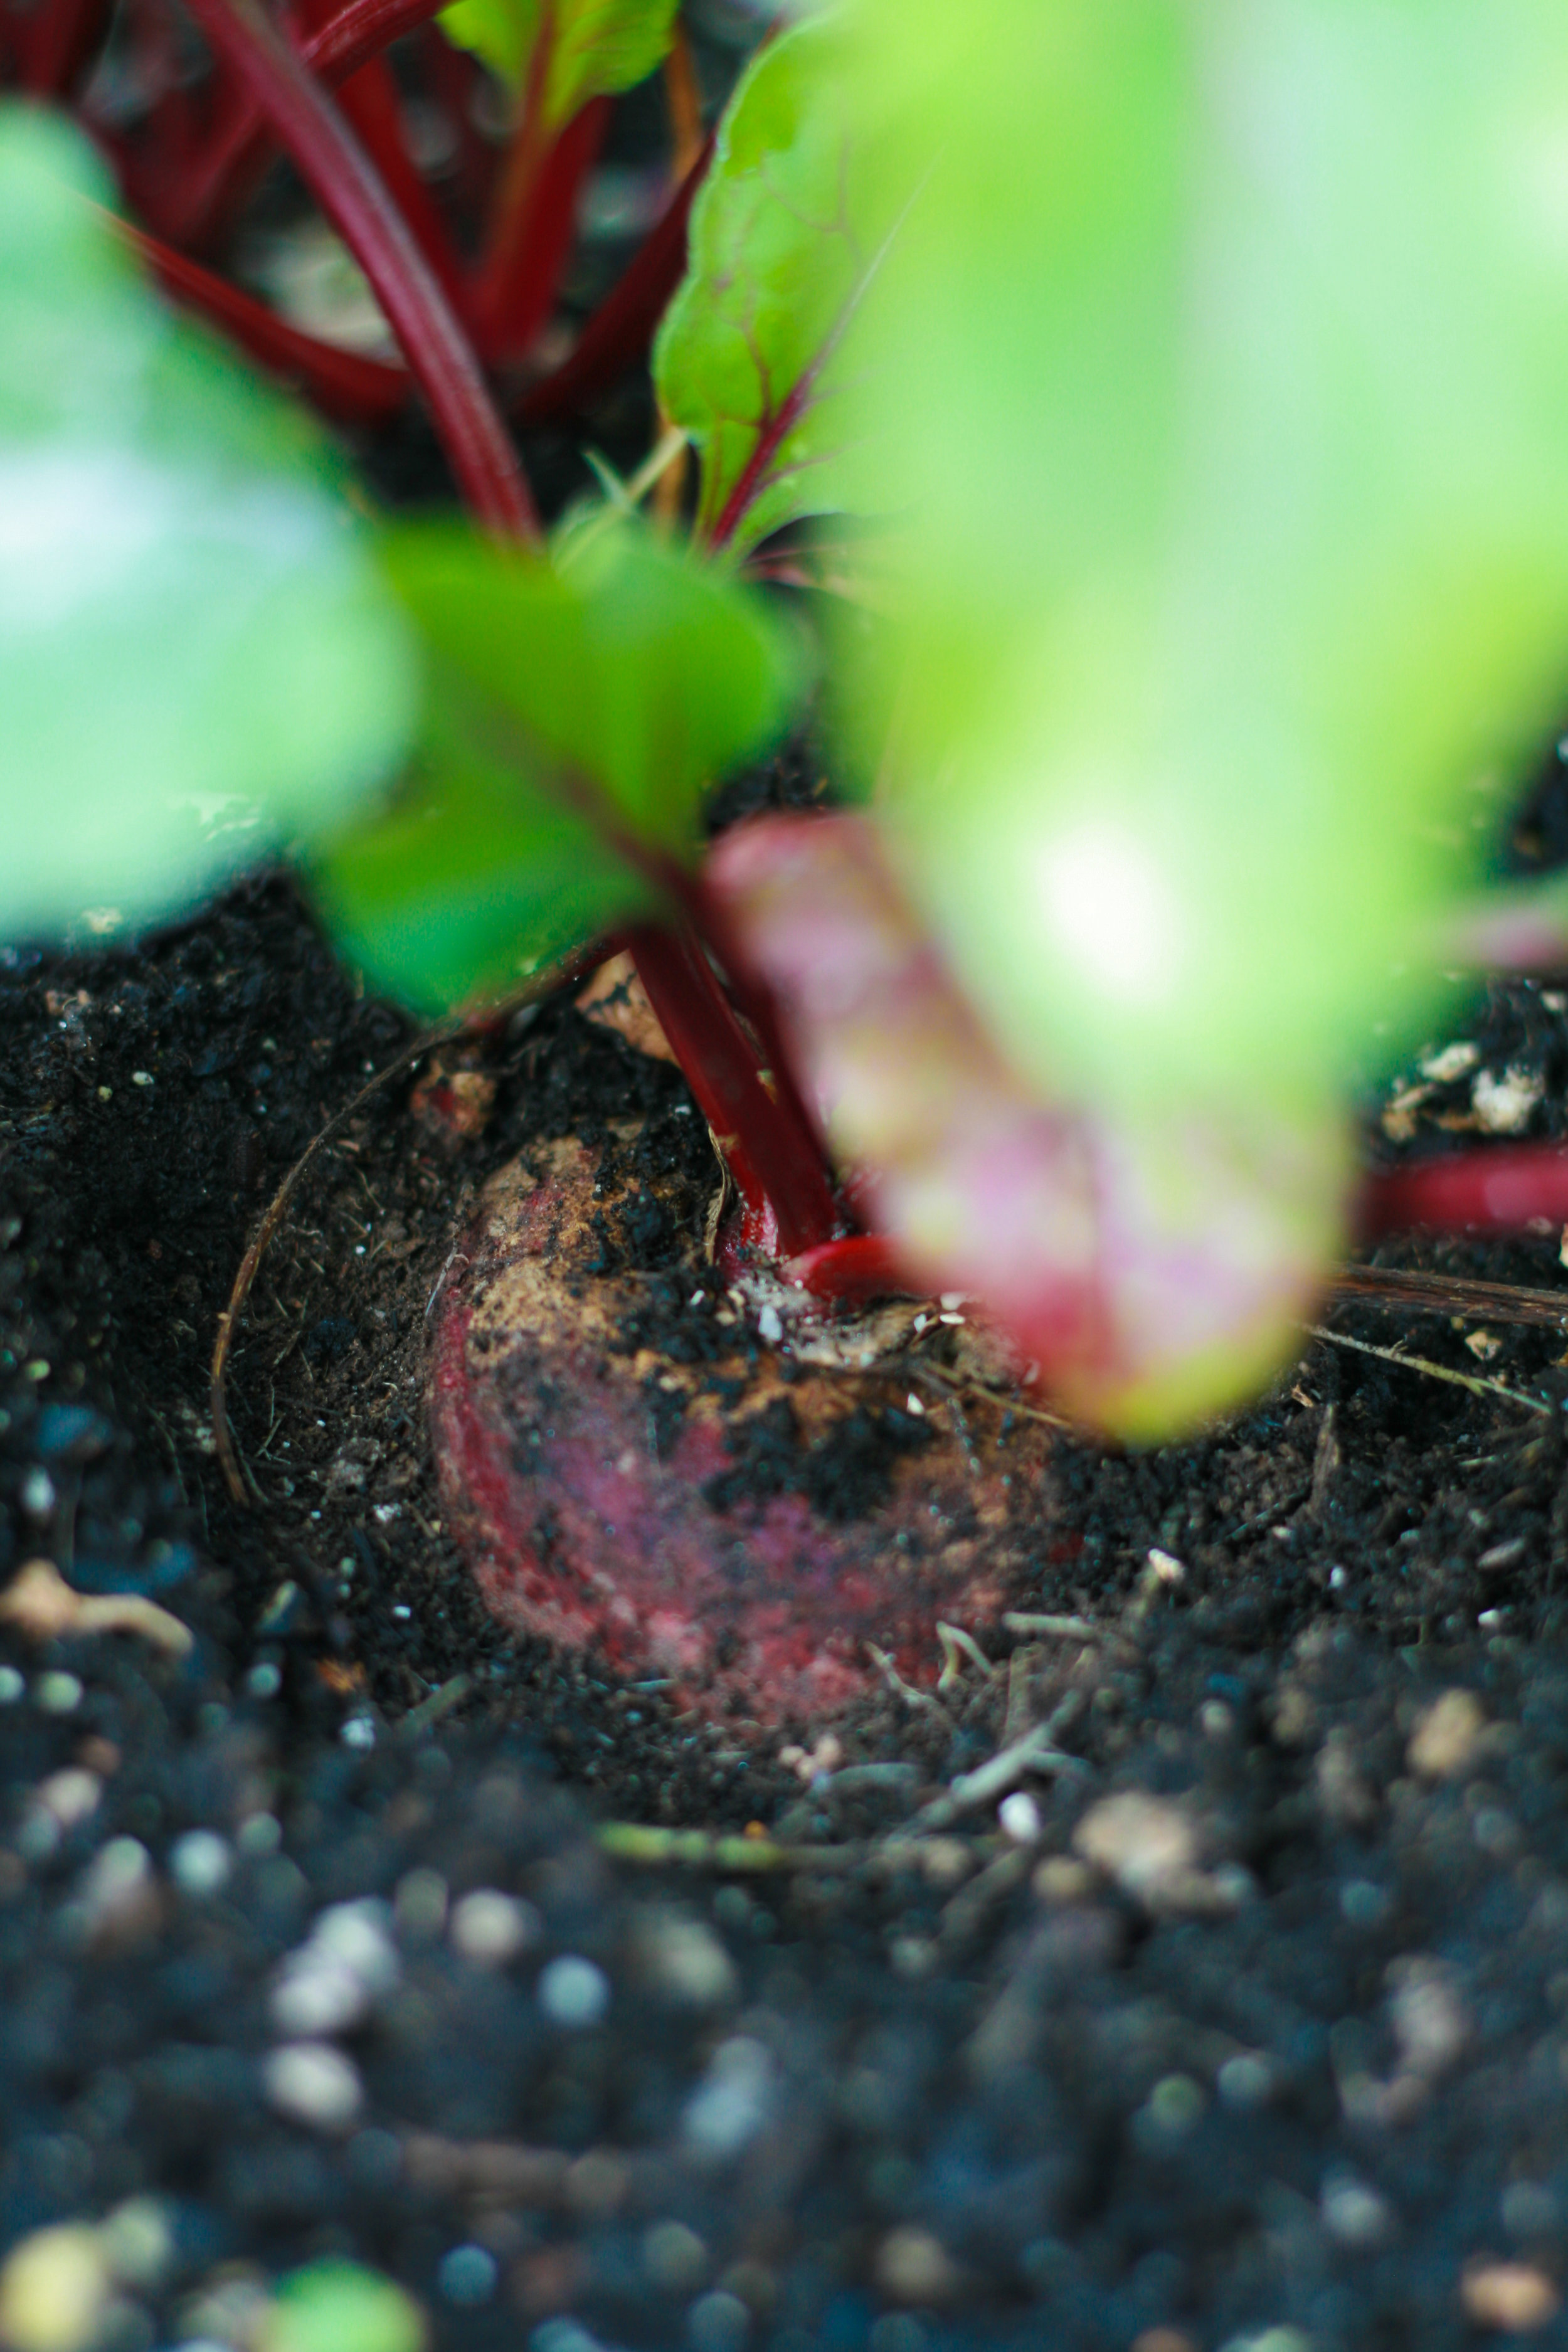 This gorgeous beet is ready to go in my morning vegetable juice for vitamins and minerals!